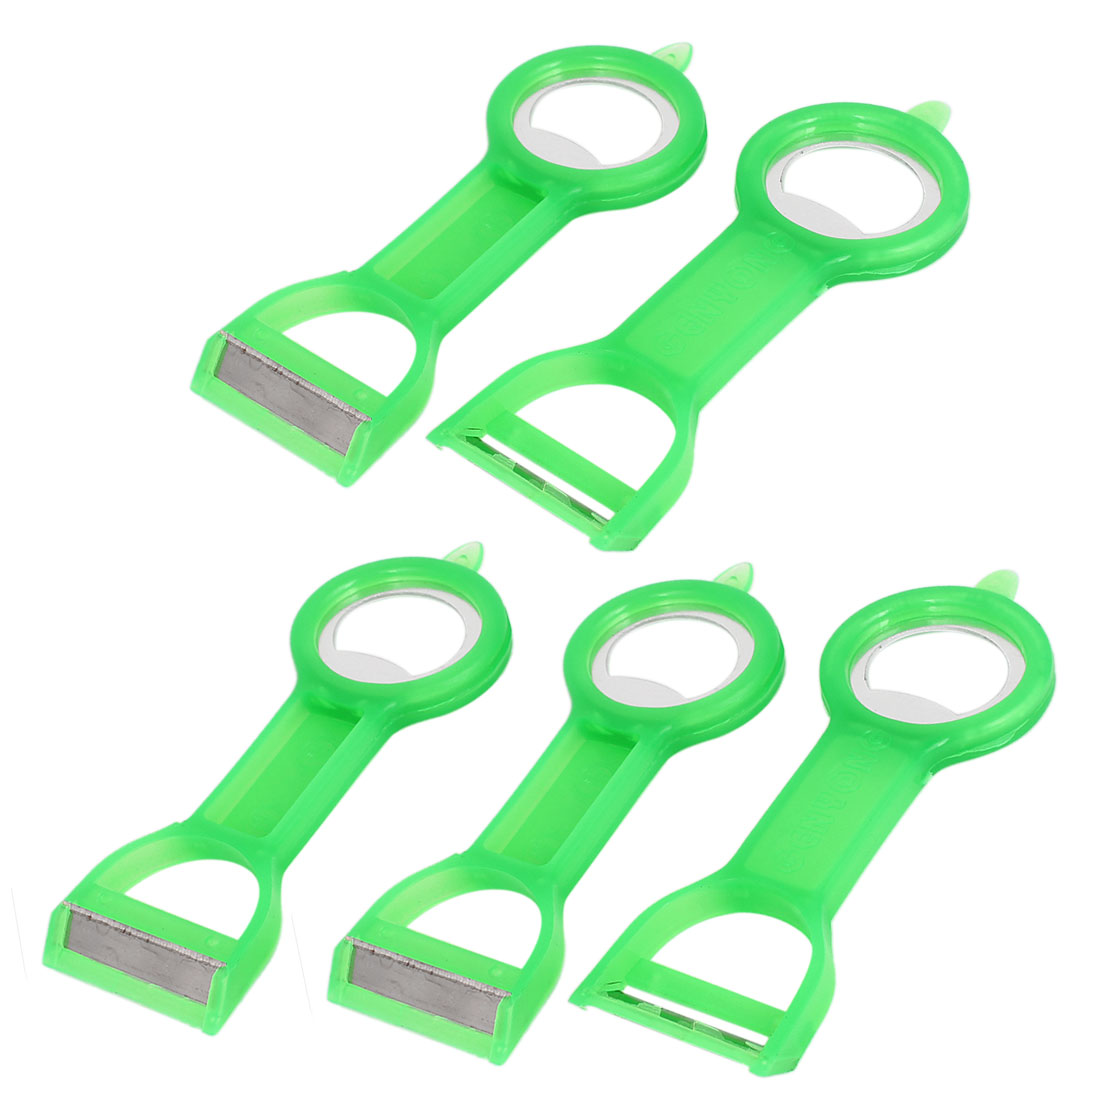 5pcs Home Kitchen Fruit Vegetable Peelers Parers Bottle Opener Tool